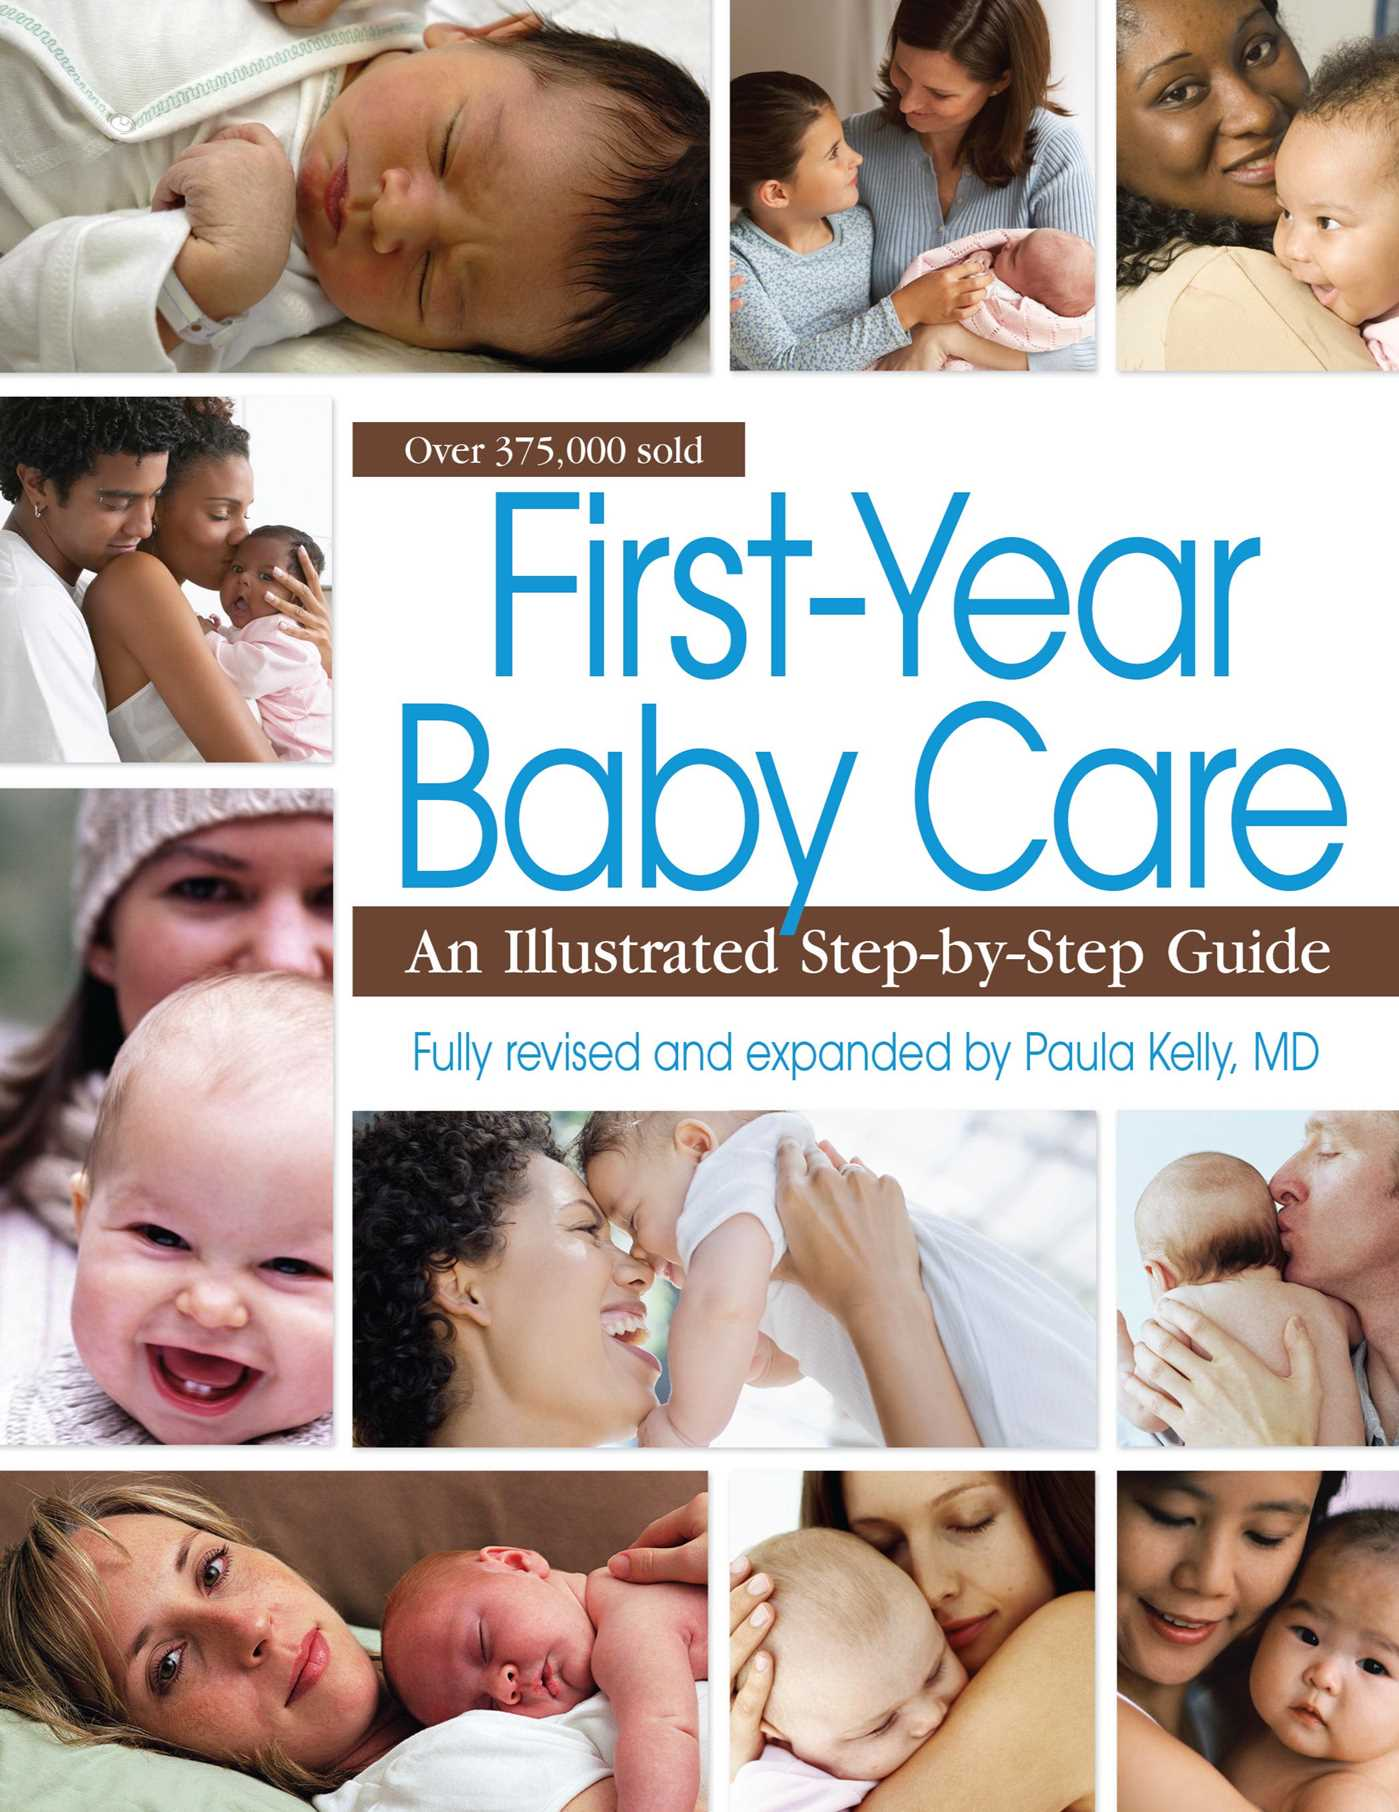 First-year-baby-care-9781451669619_hr